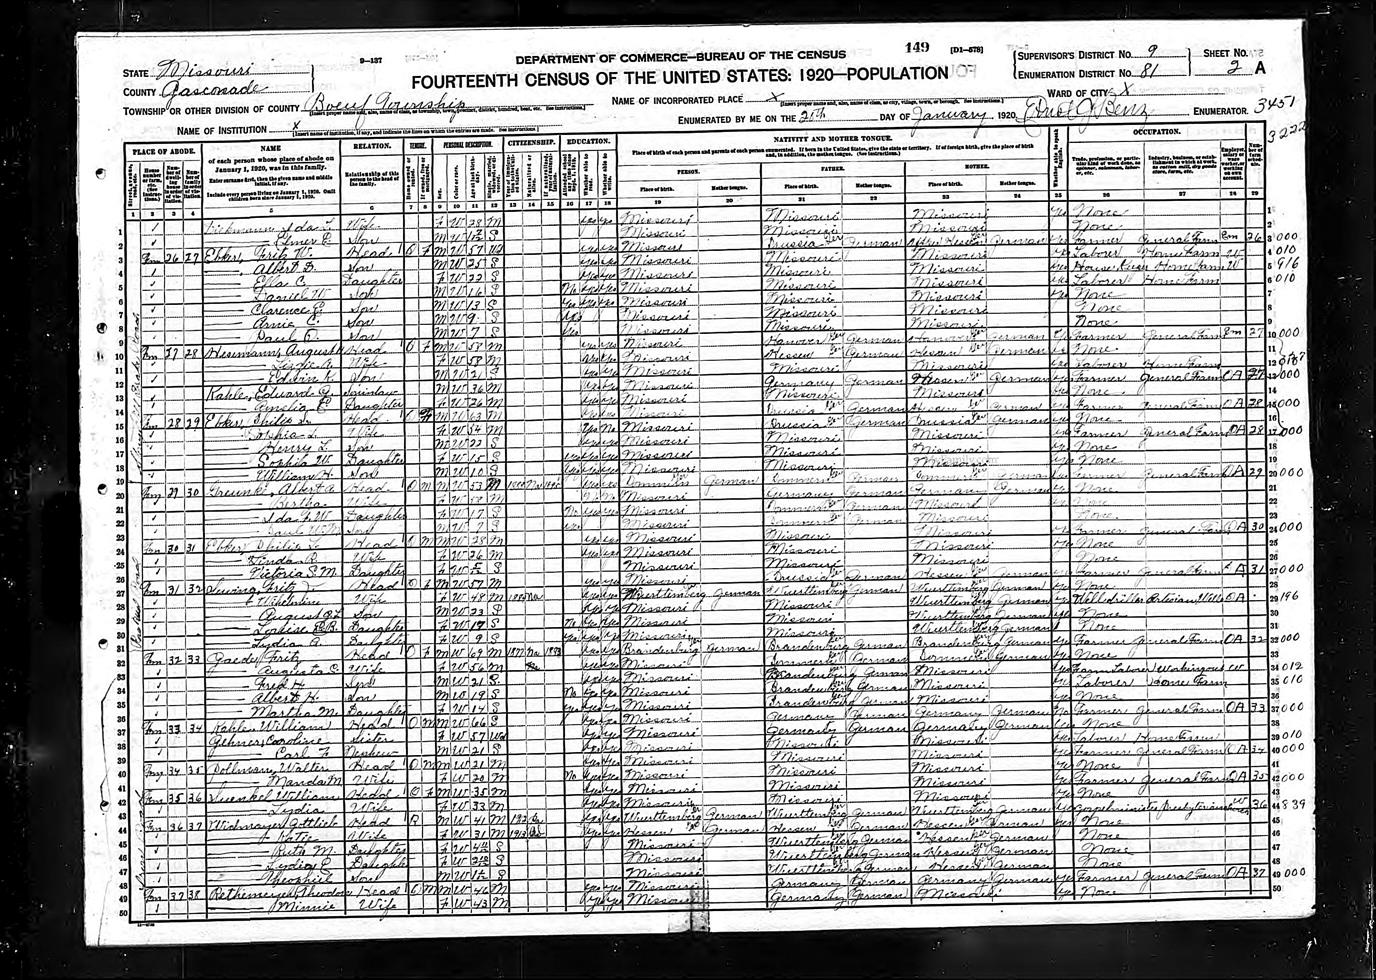 Lydia E Widmayer - 1920 United States Federal Census